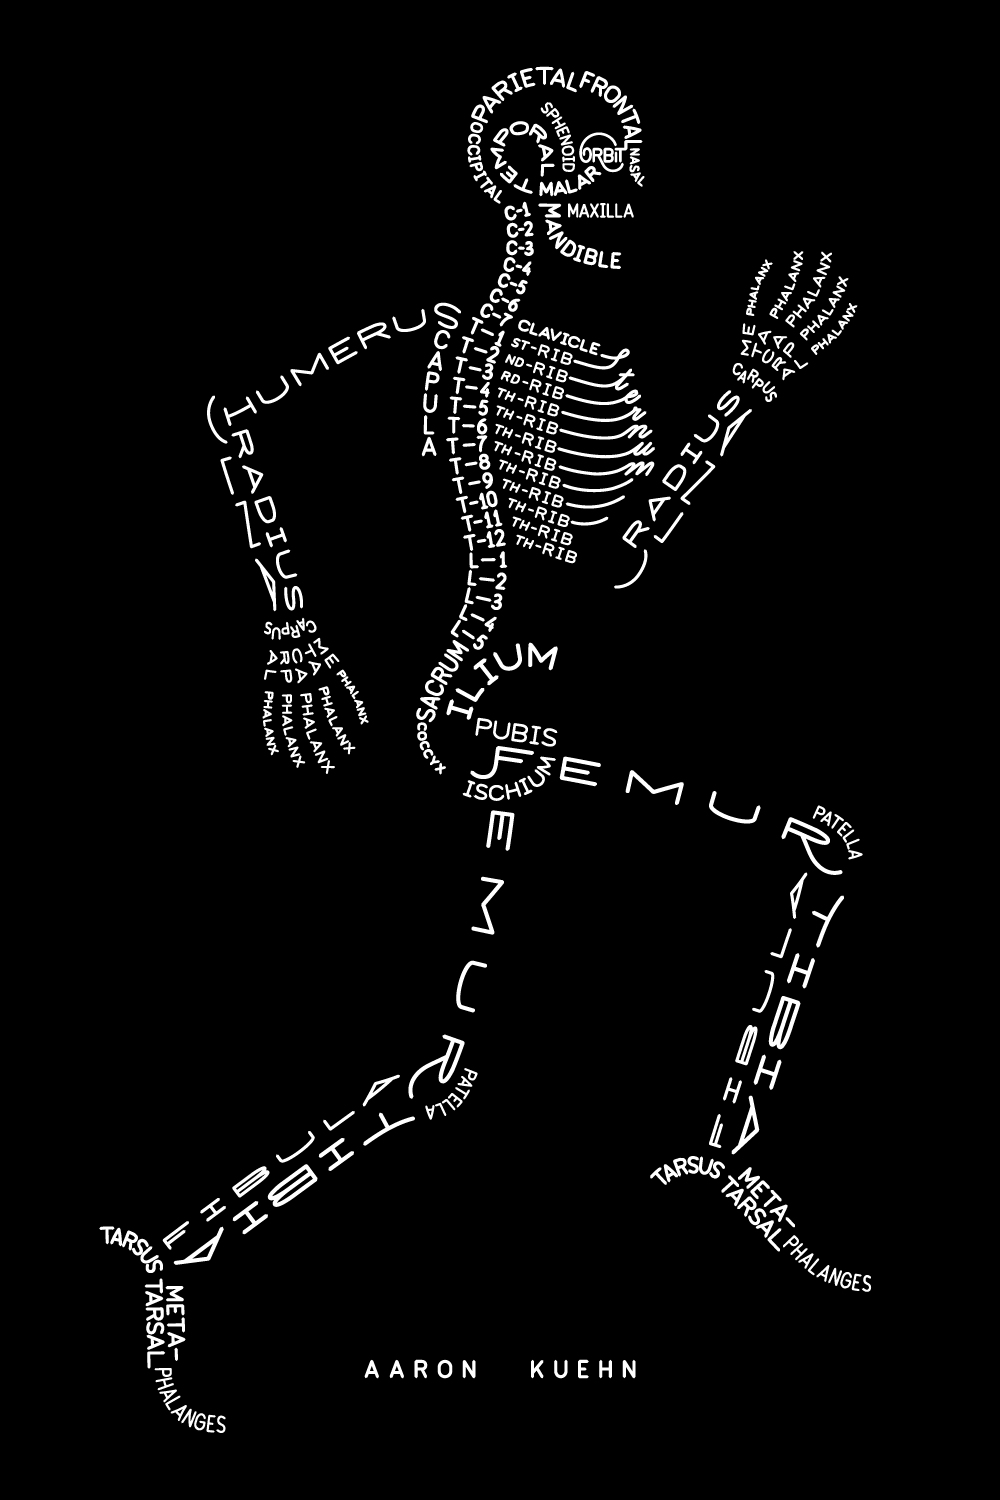 A radiological anatomical diagram and model of the human skeletal system in a running pose, composed of the names of the bones using typography.